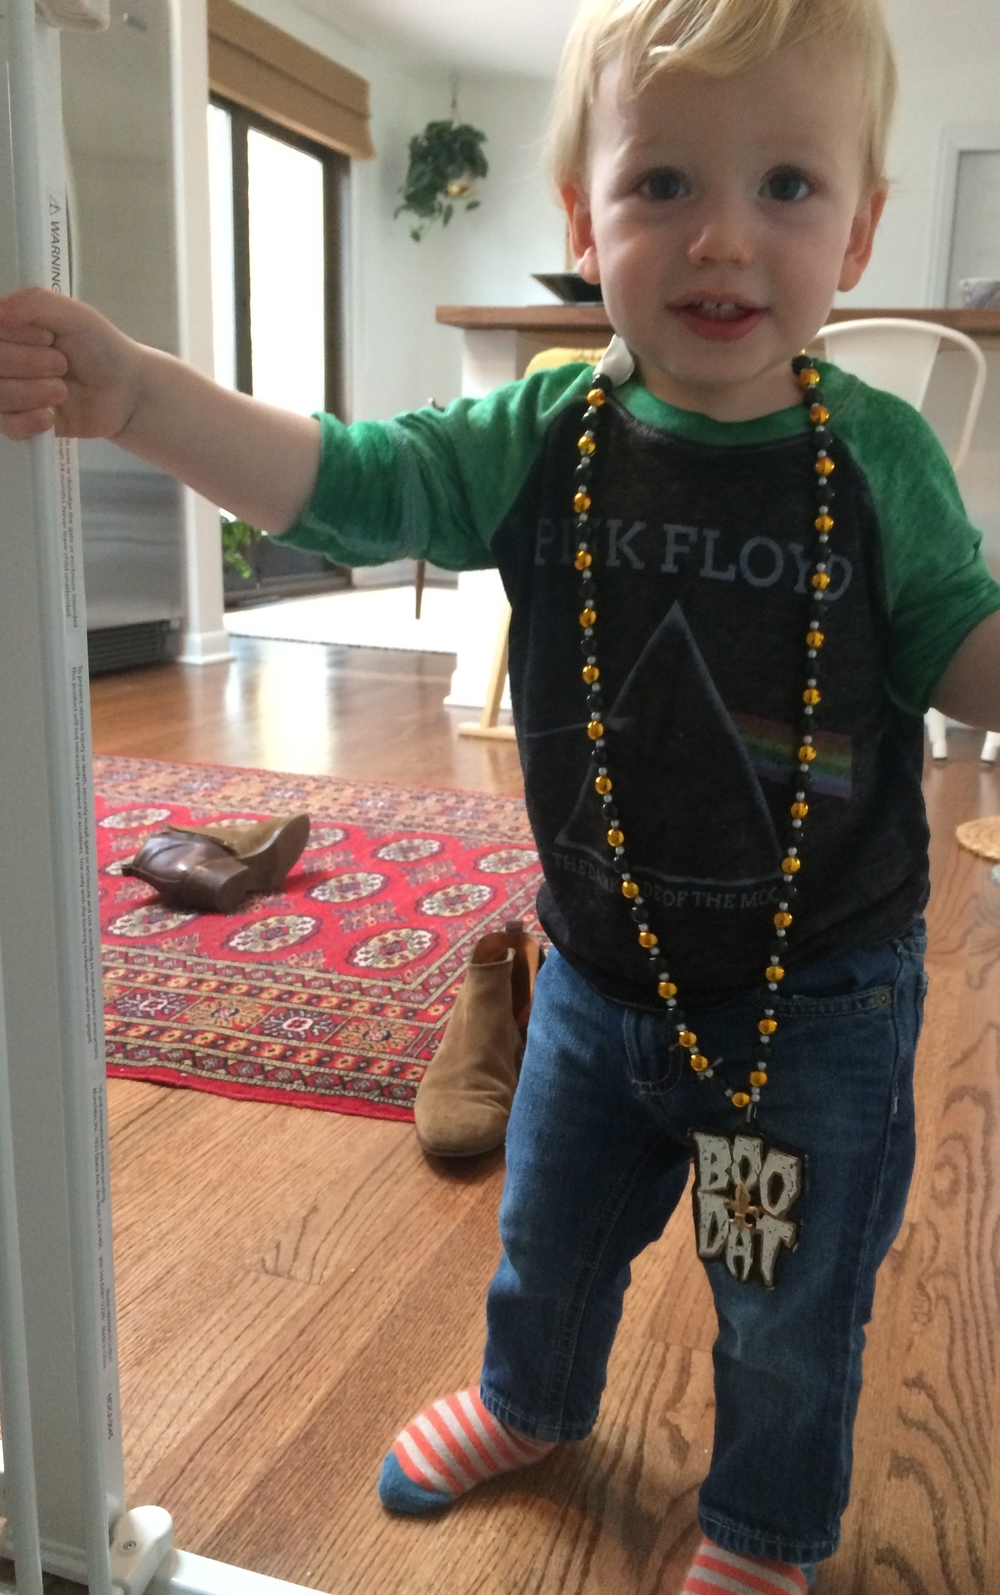 Our little Henry - 18 months and ready for Mardi Gras